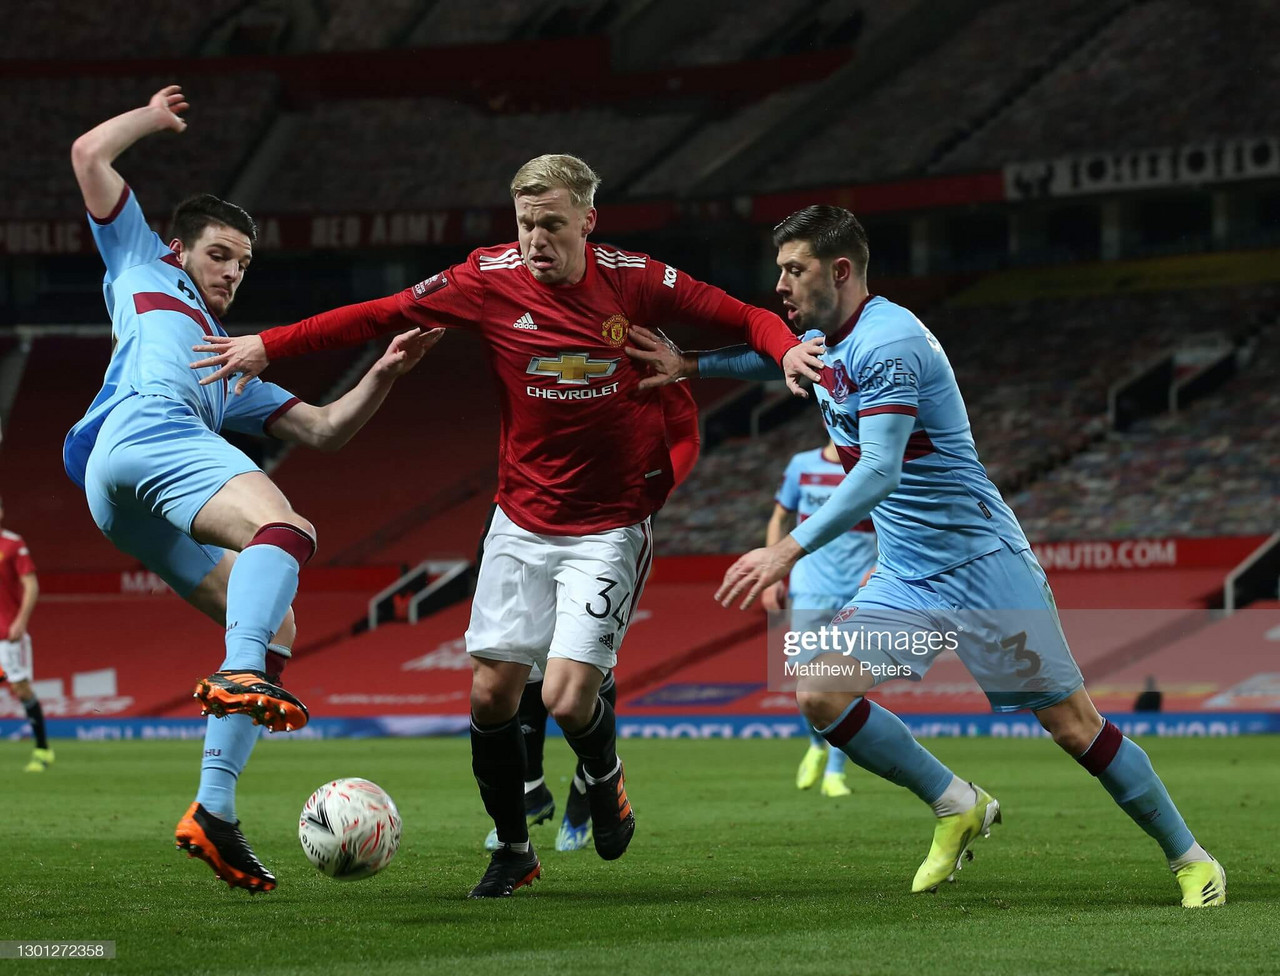 Manchester United - The Donny van de Beek issue